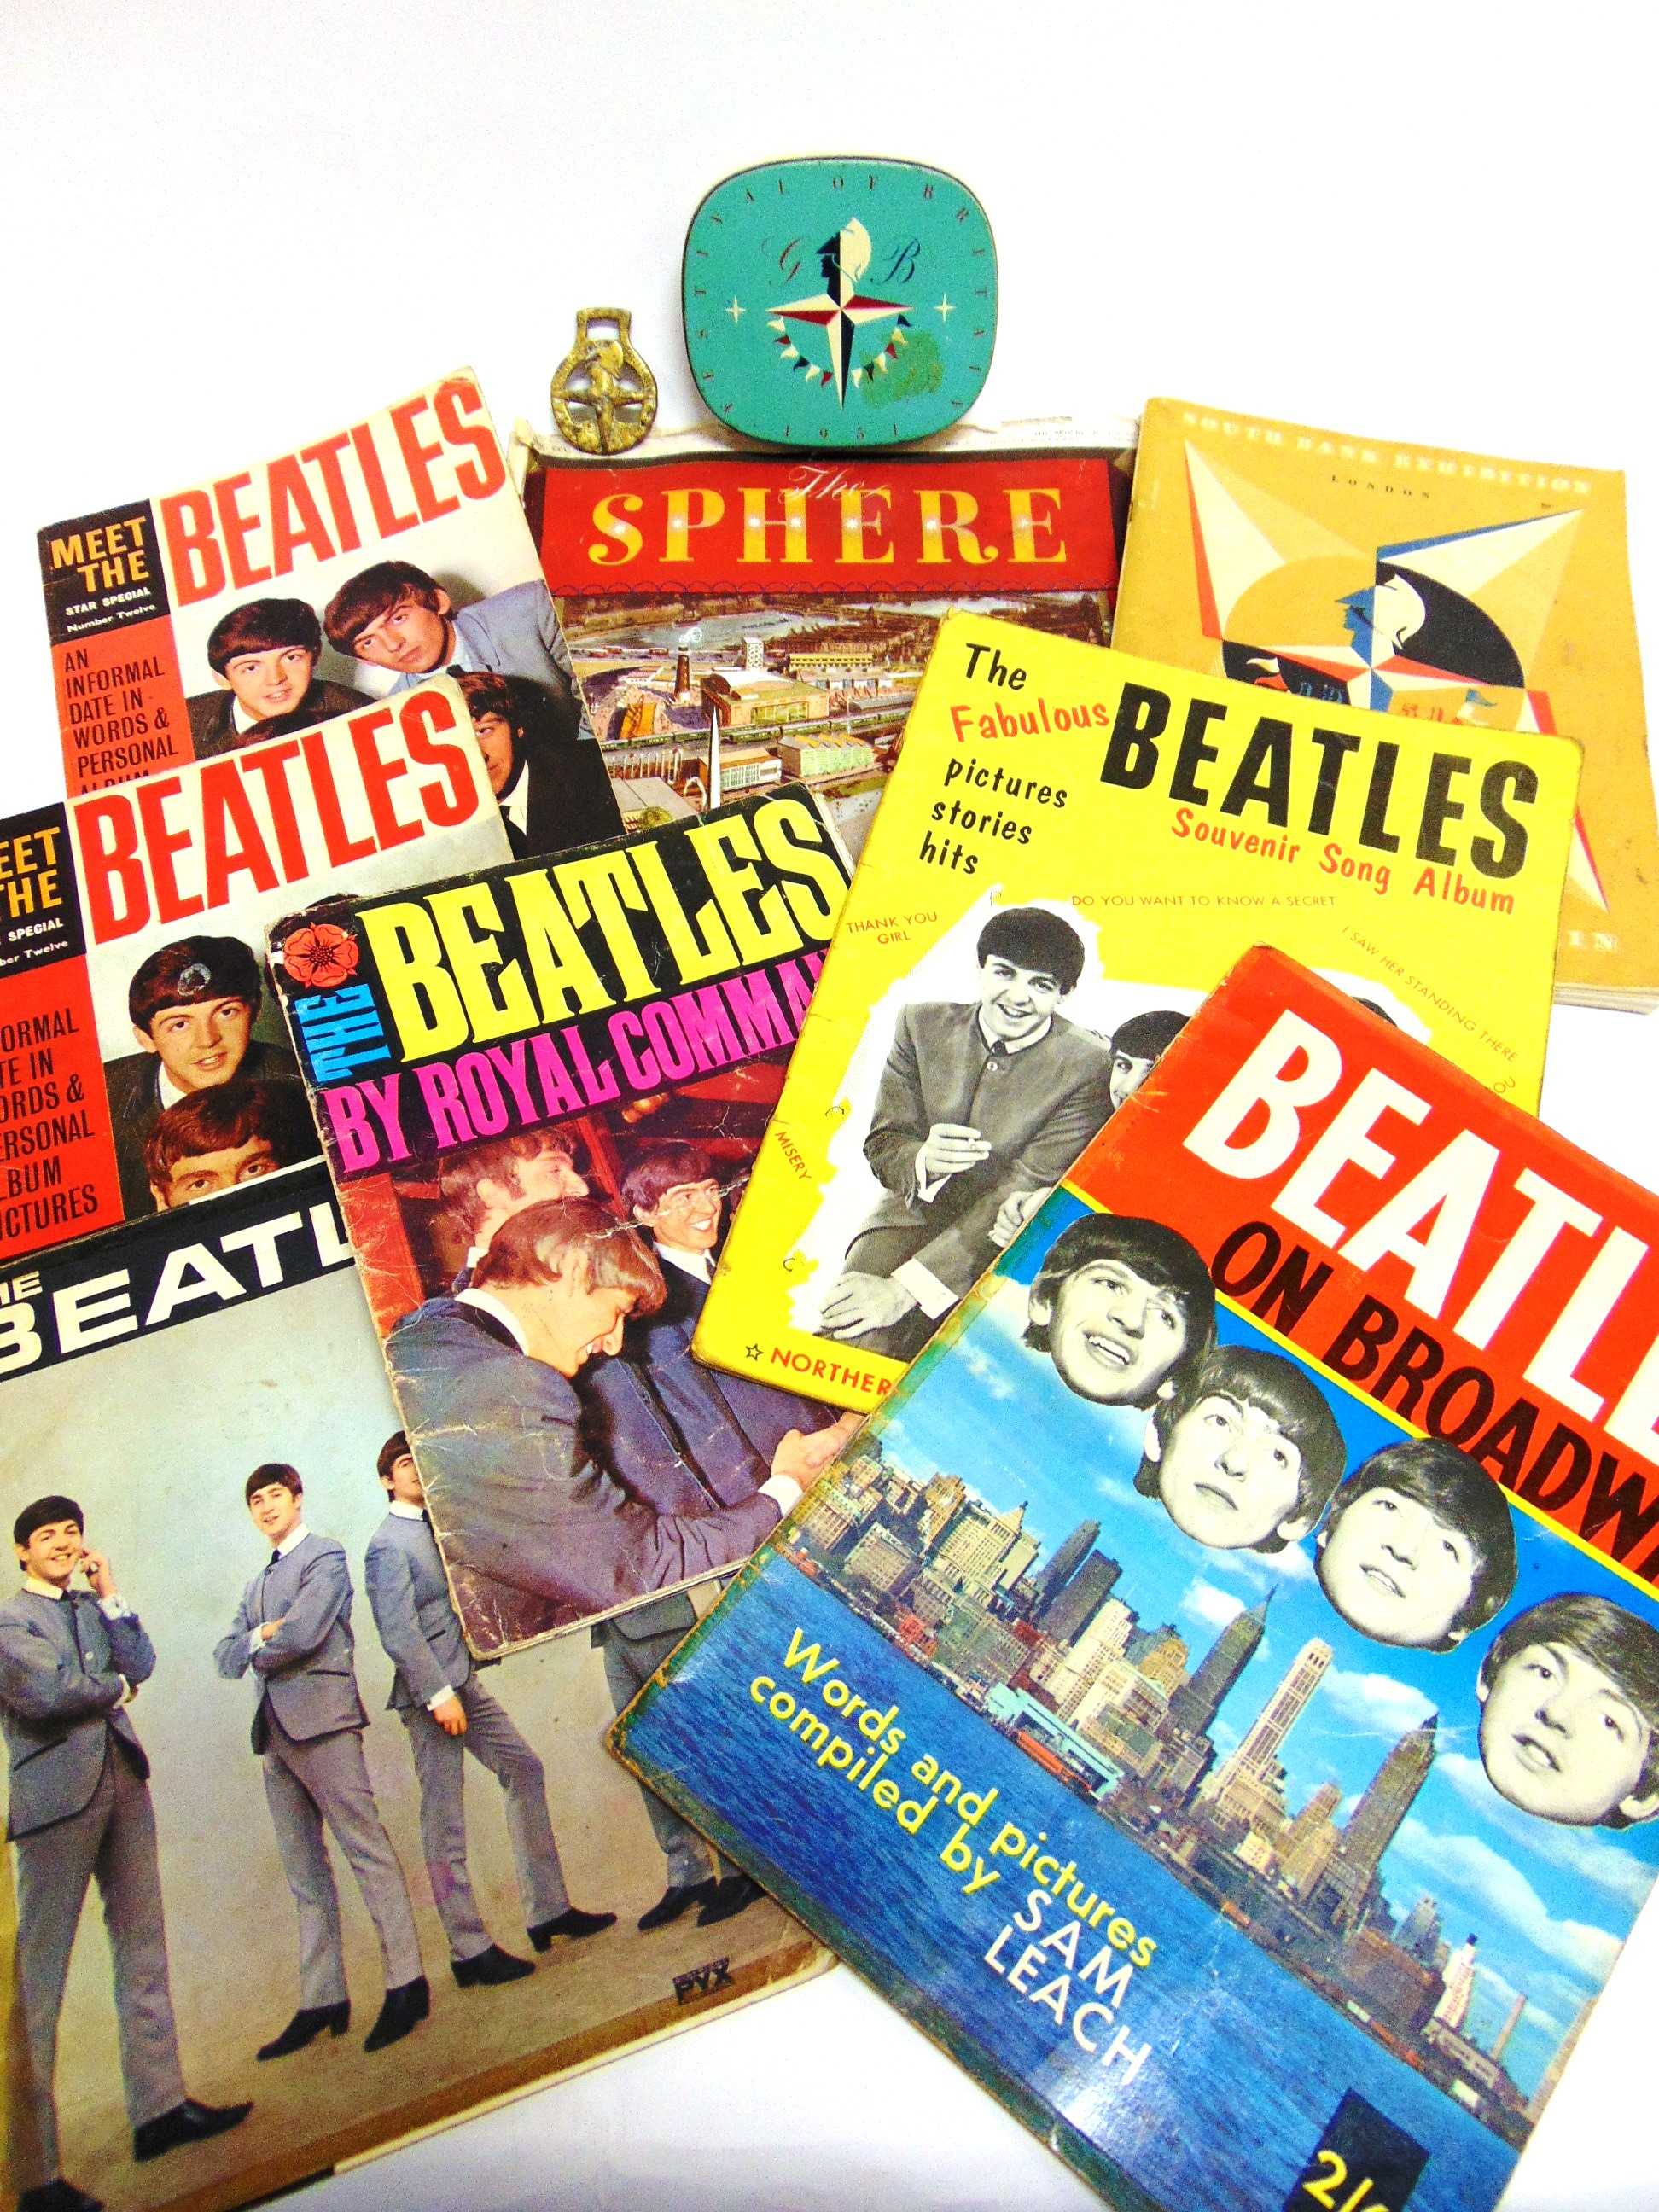 Lot 1024 - THE BEATLES & THE FESTIVAL OF BRITAIN - ASSORTED EPHEMERA comprising booklets, a miniature horse